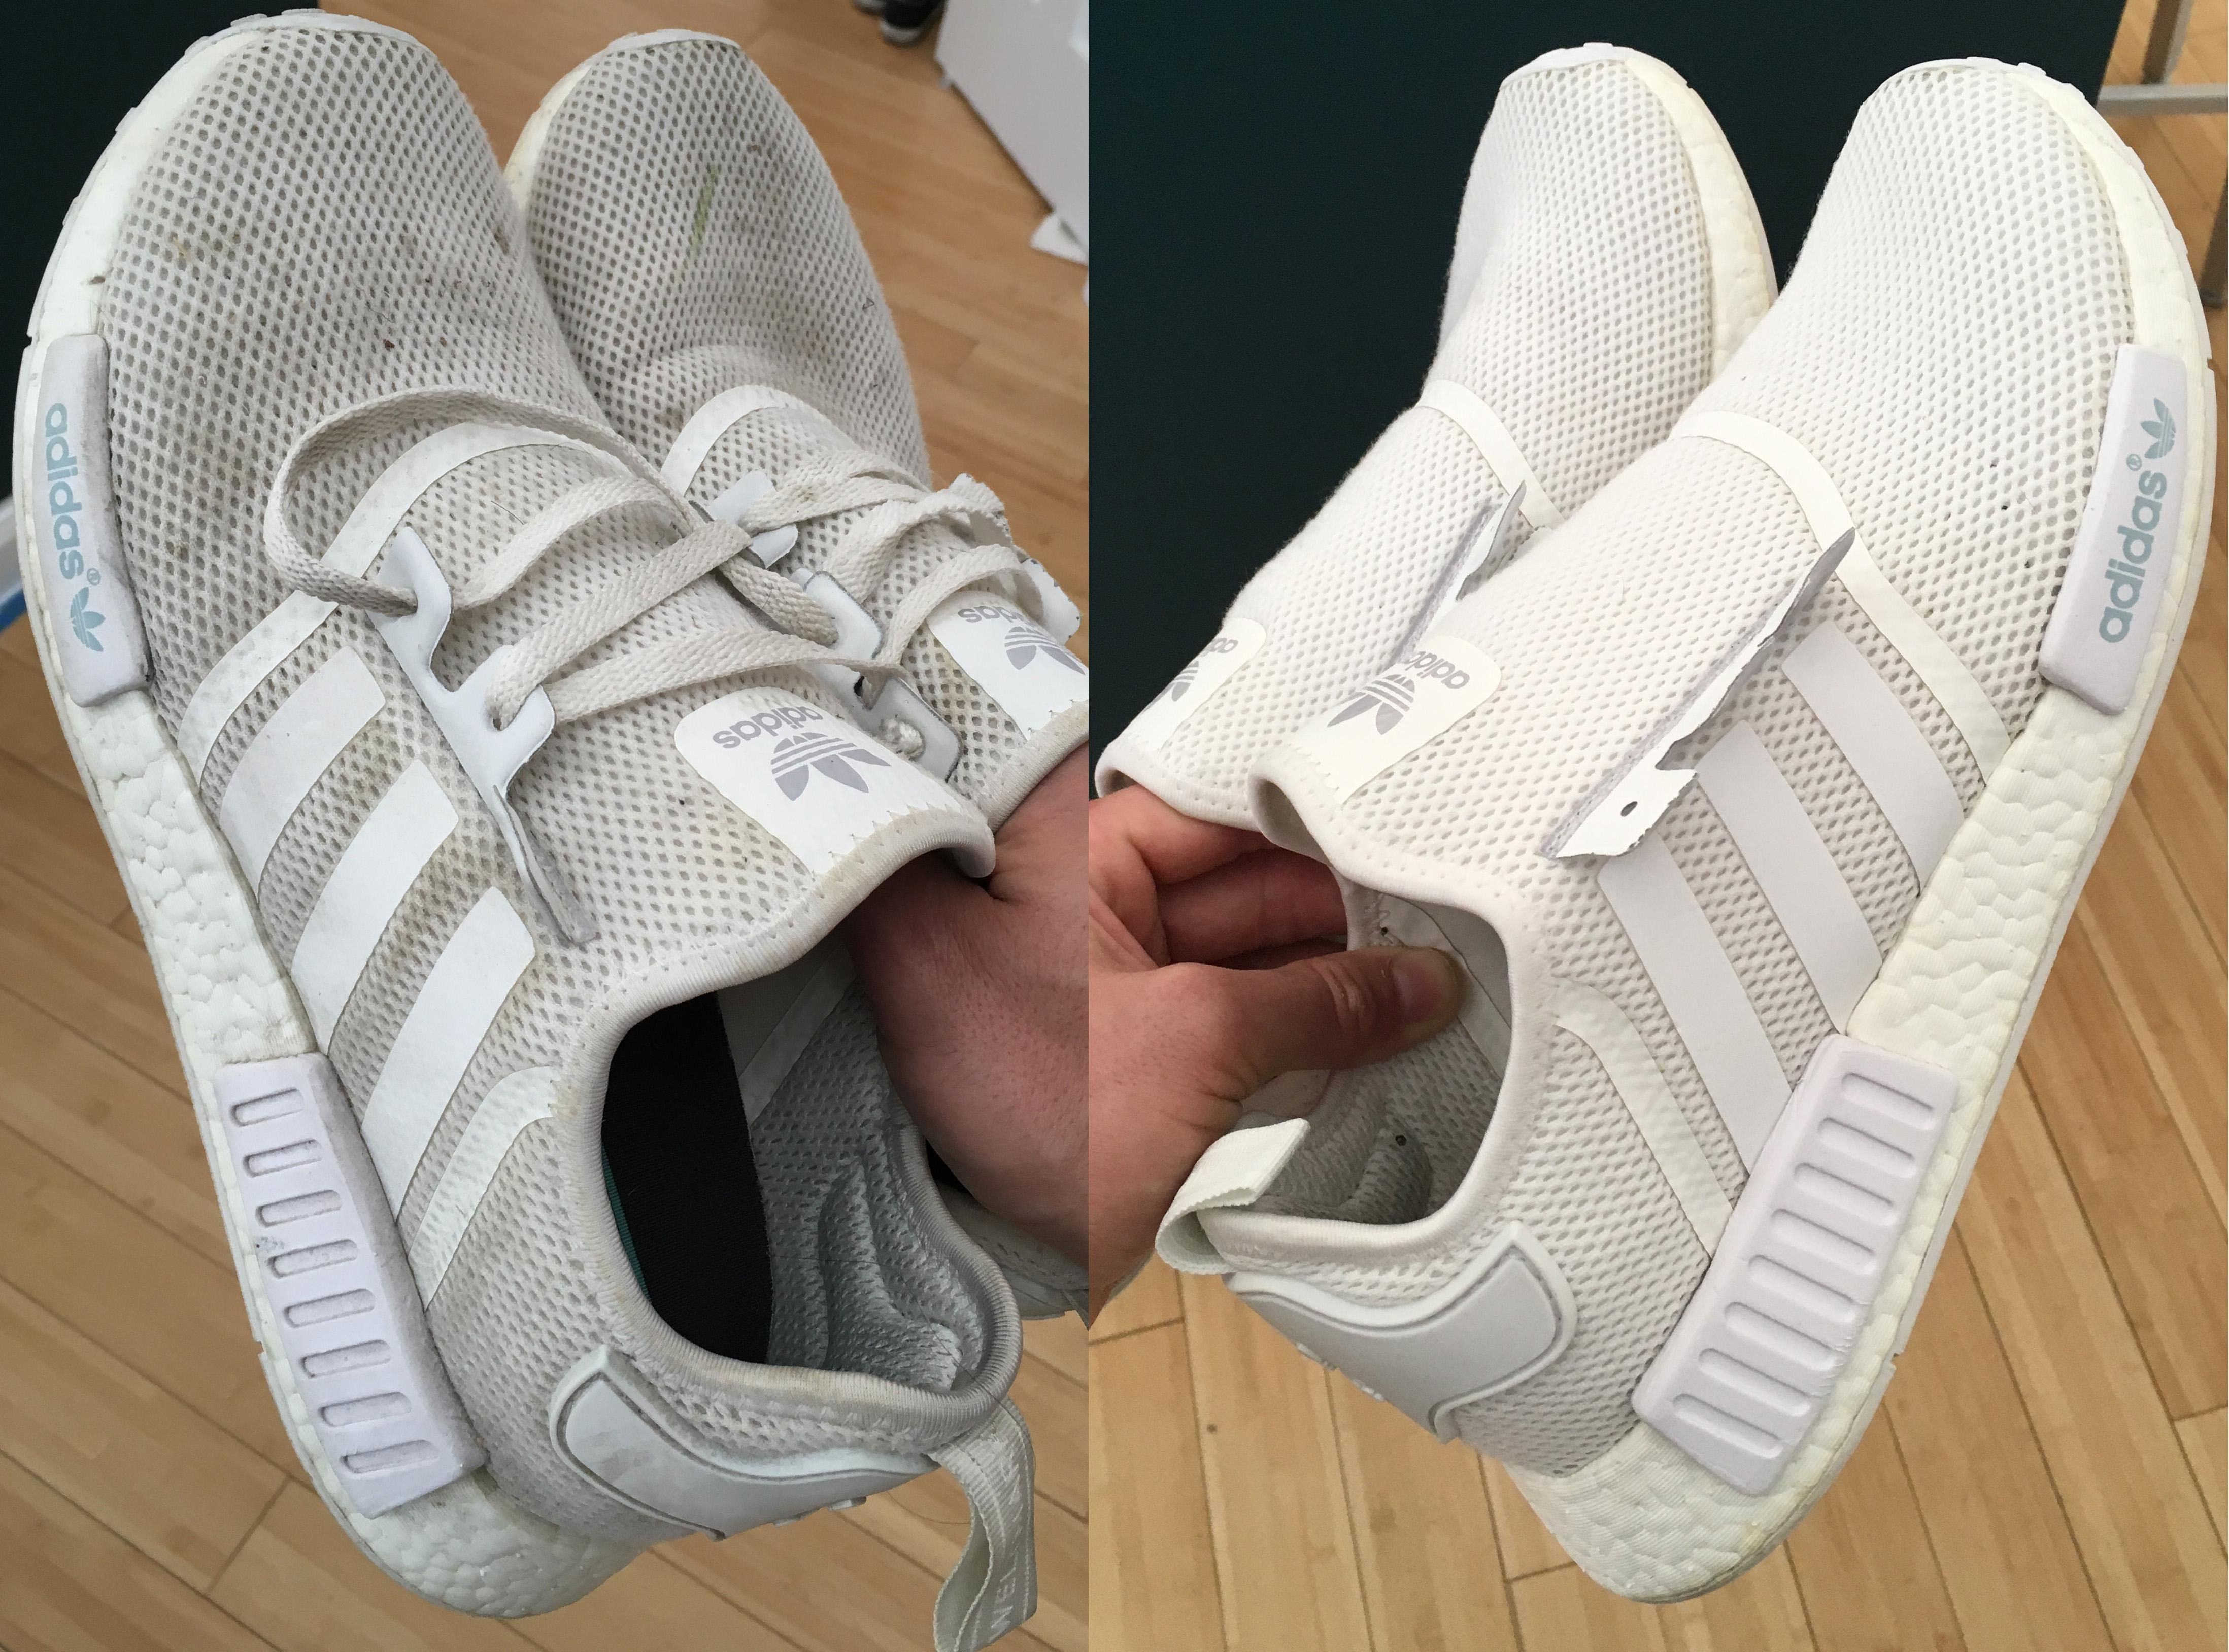 Don't be afraid to use your washing machine: NMD Before After